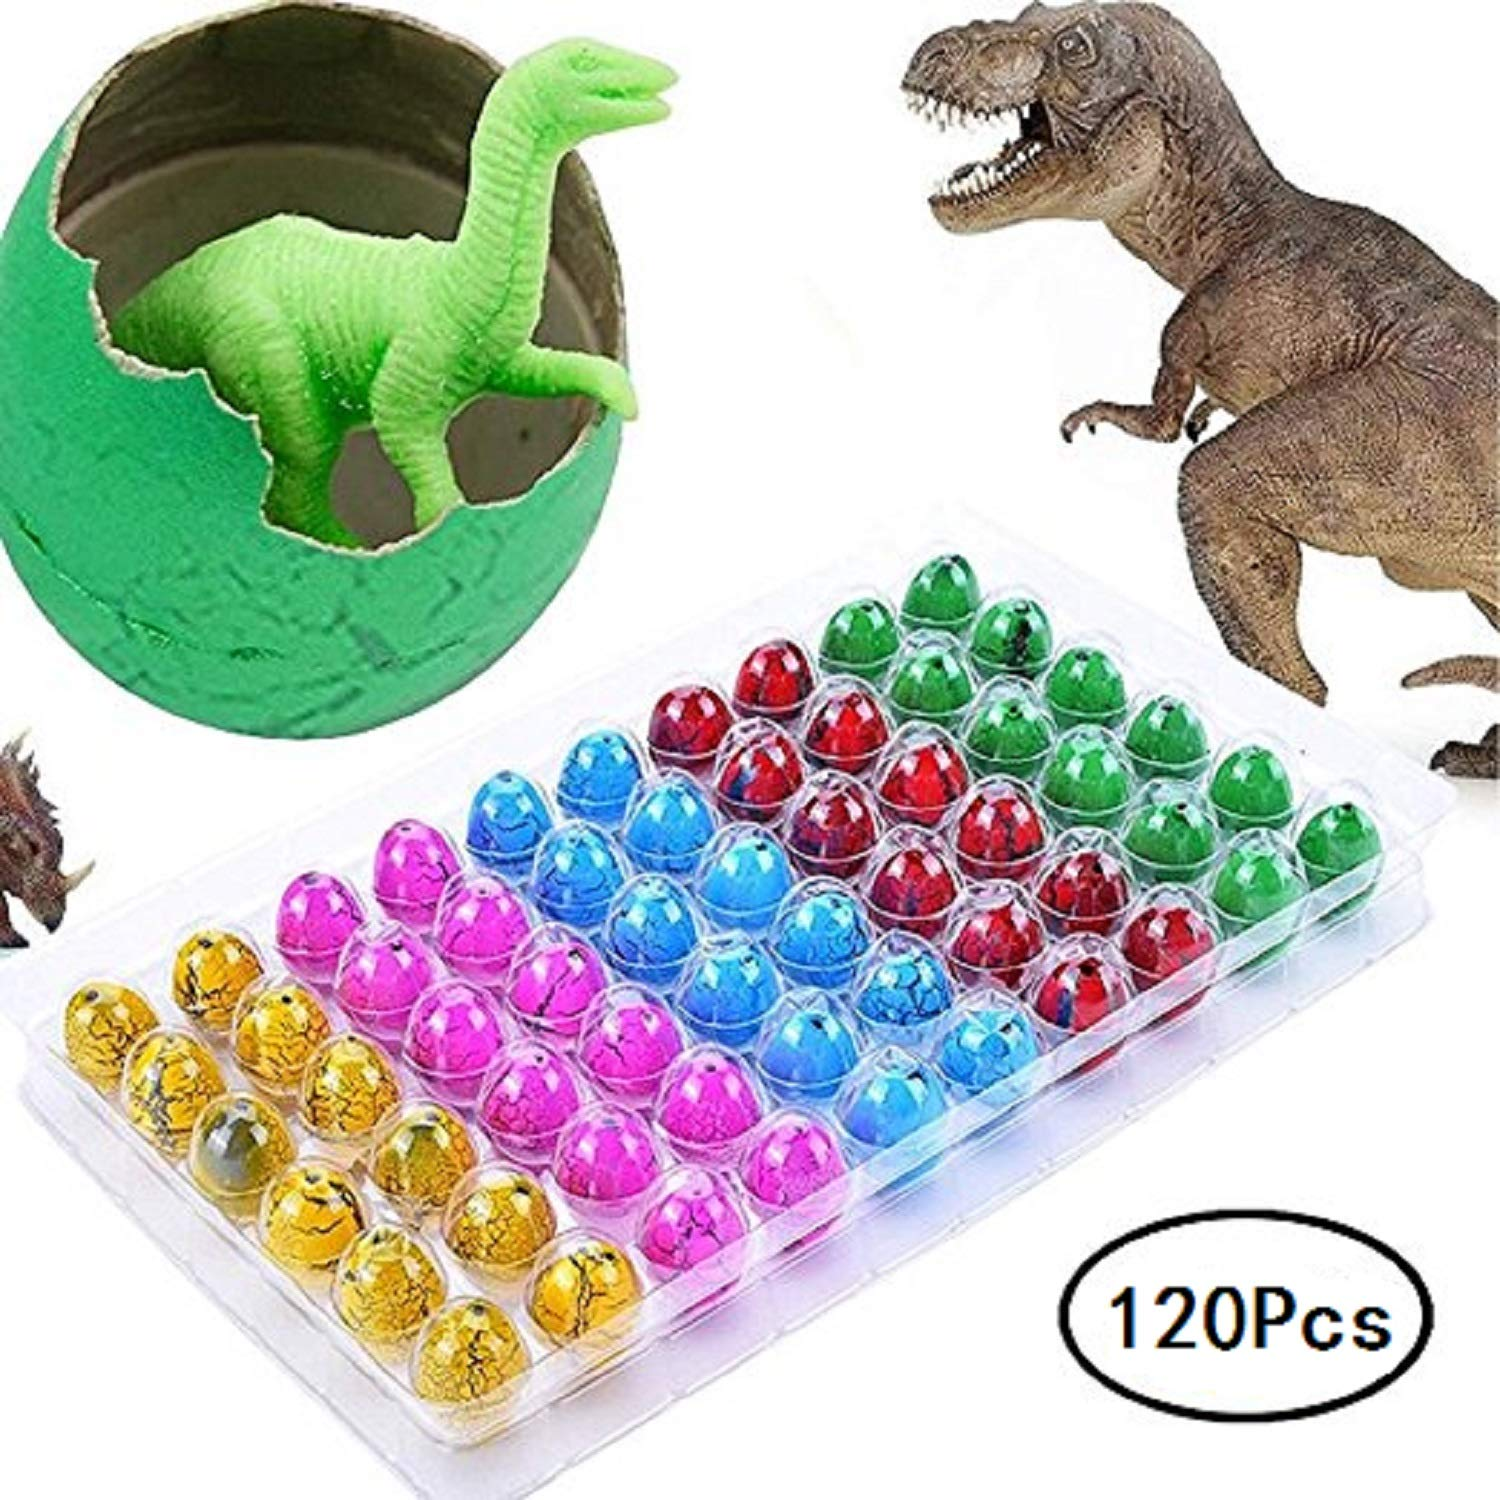 YanXi7 120 Pcs Novelty Hatching Dinosaur Toys , Hatch and Grow Easter Dinosaur Eggs That Hatch in Water for Kids Party Supplies